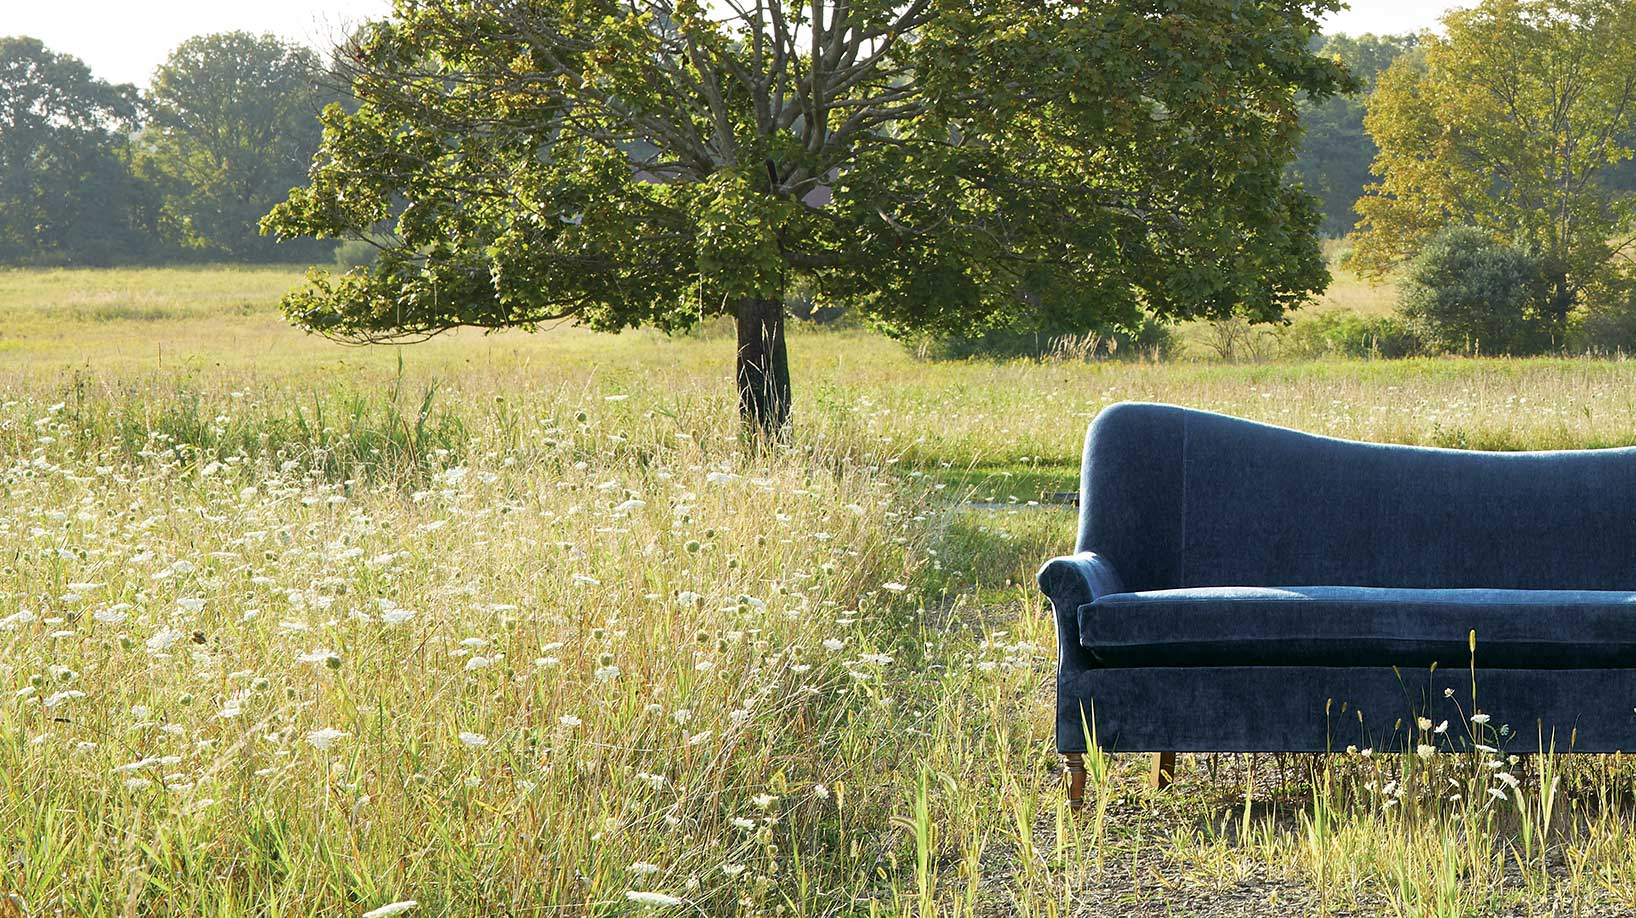 Arhaus sofa in the middle of a field